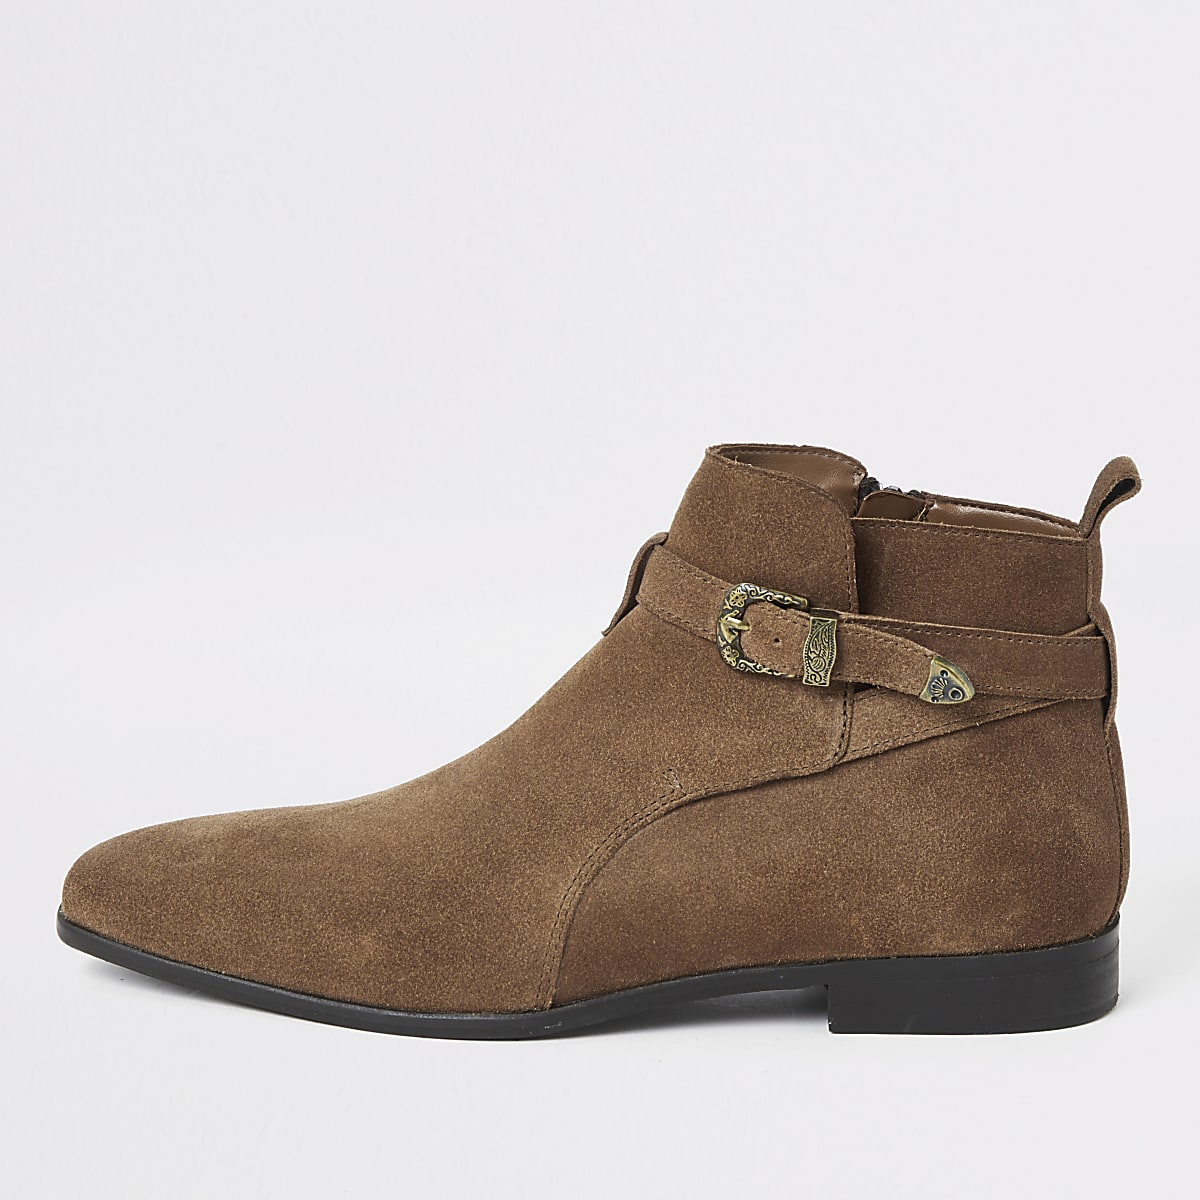 Mid brown suede western buckle boots